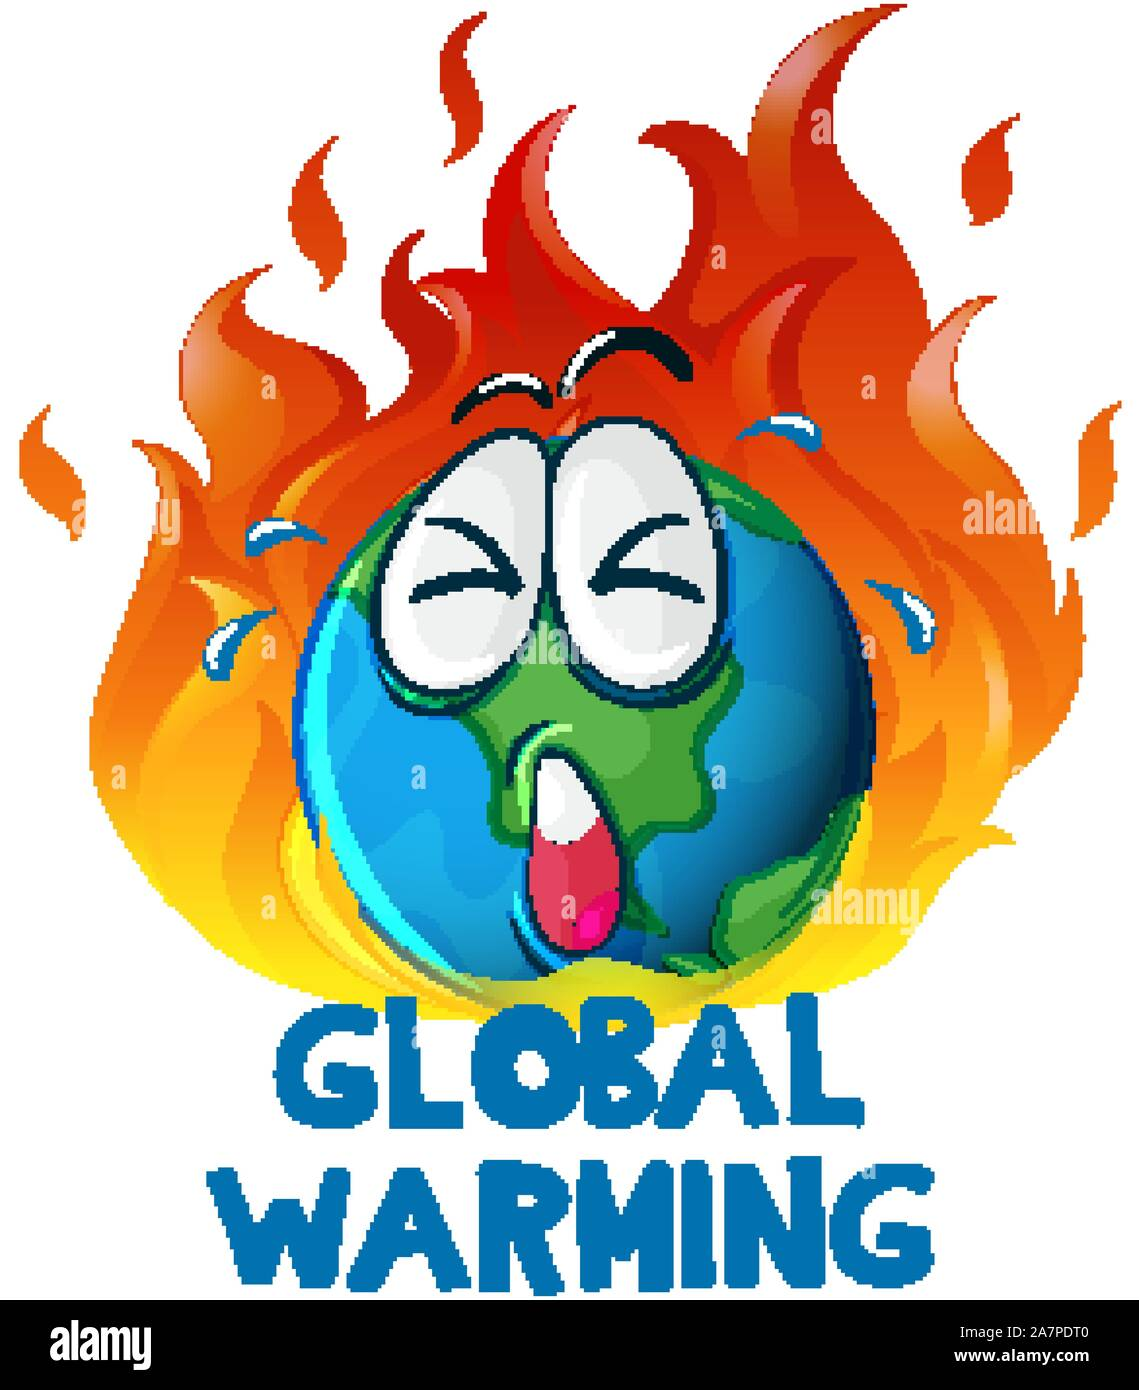 Global Warming With Earth On Fire Illustration Stock Vector Art